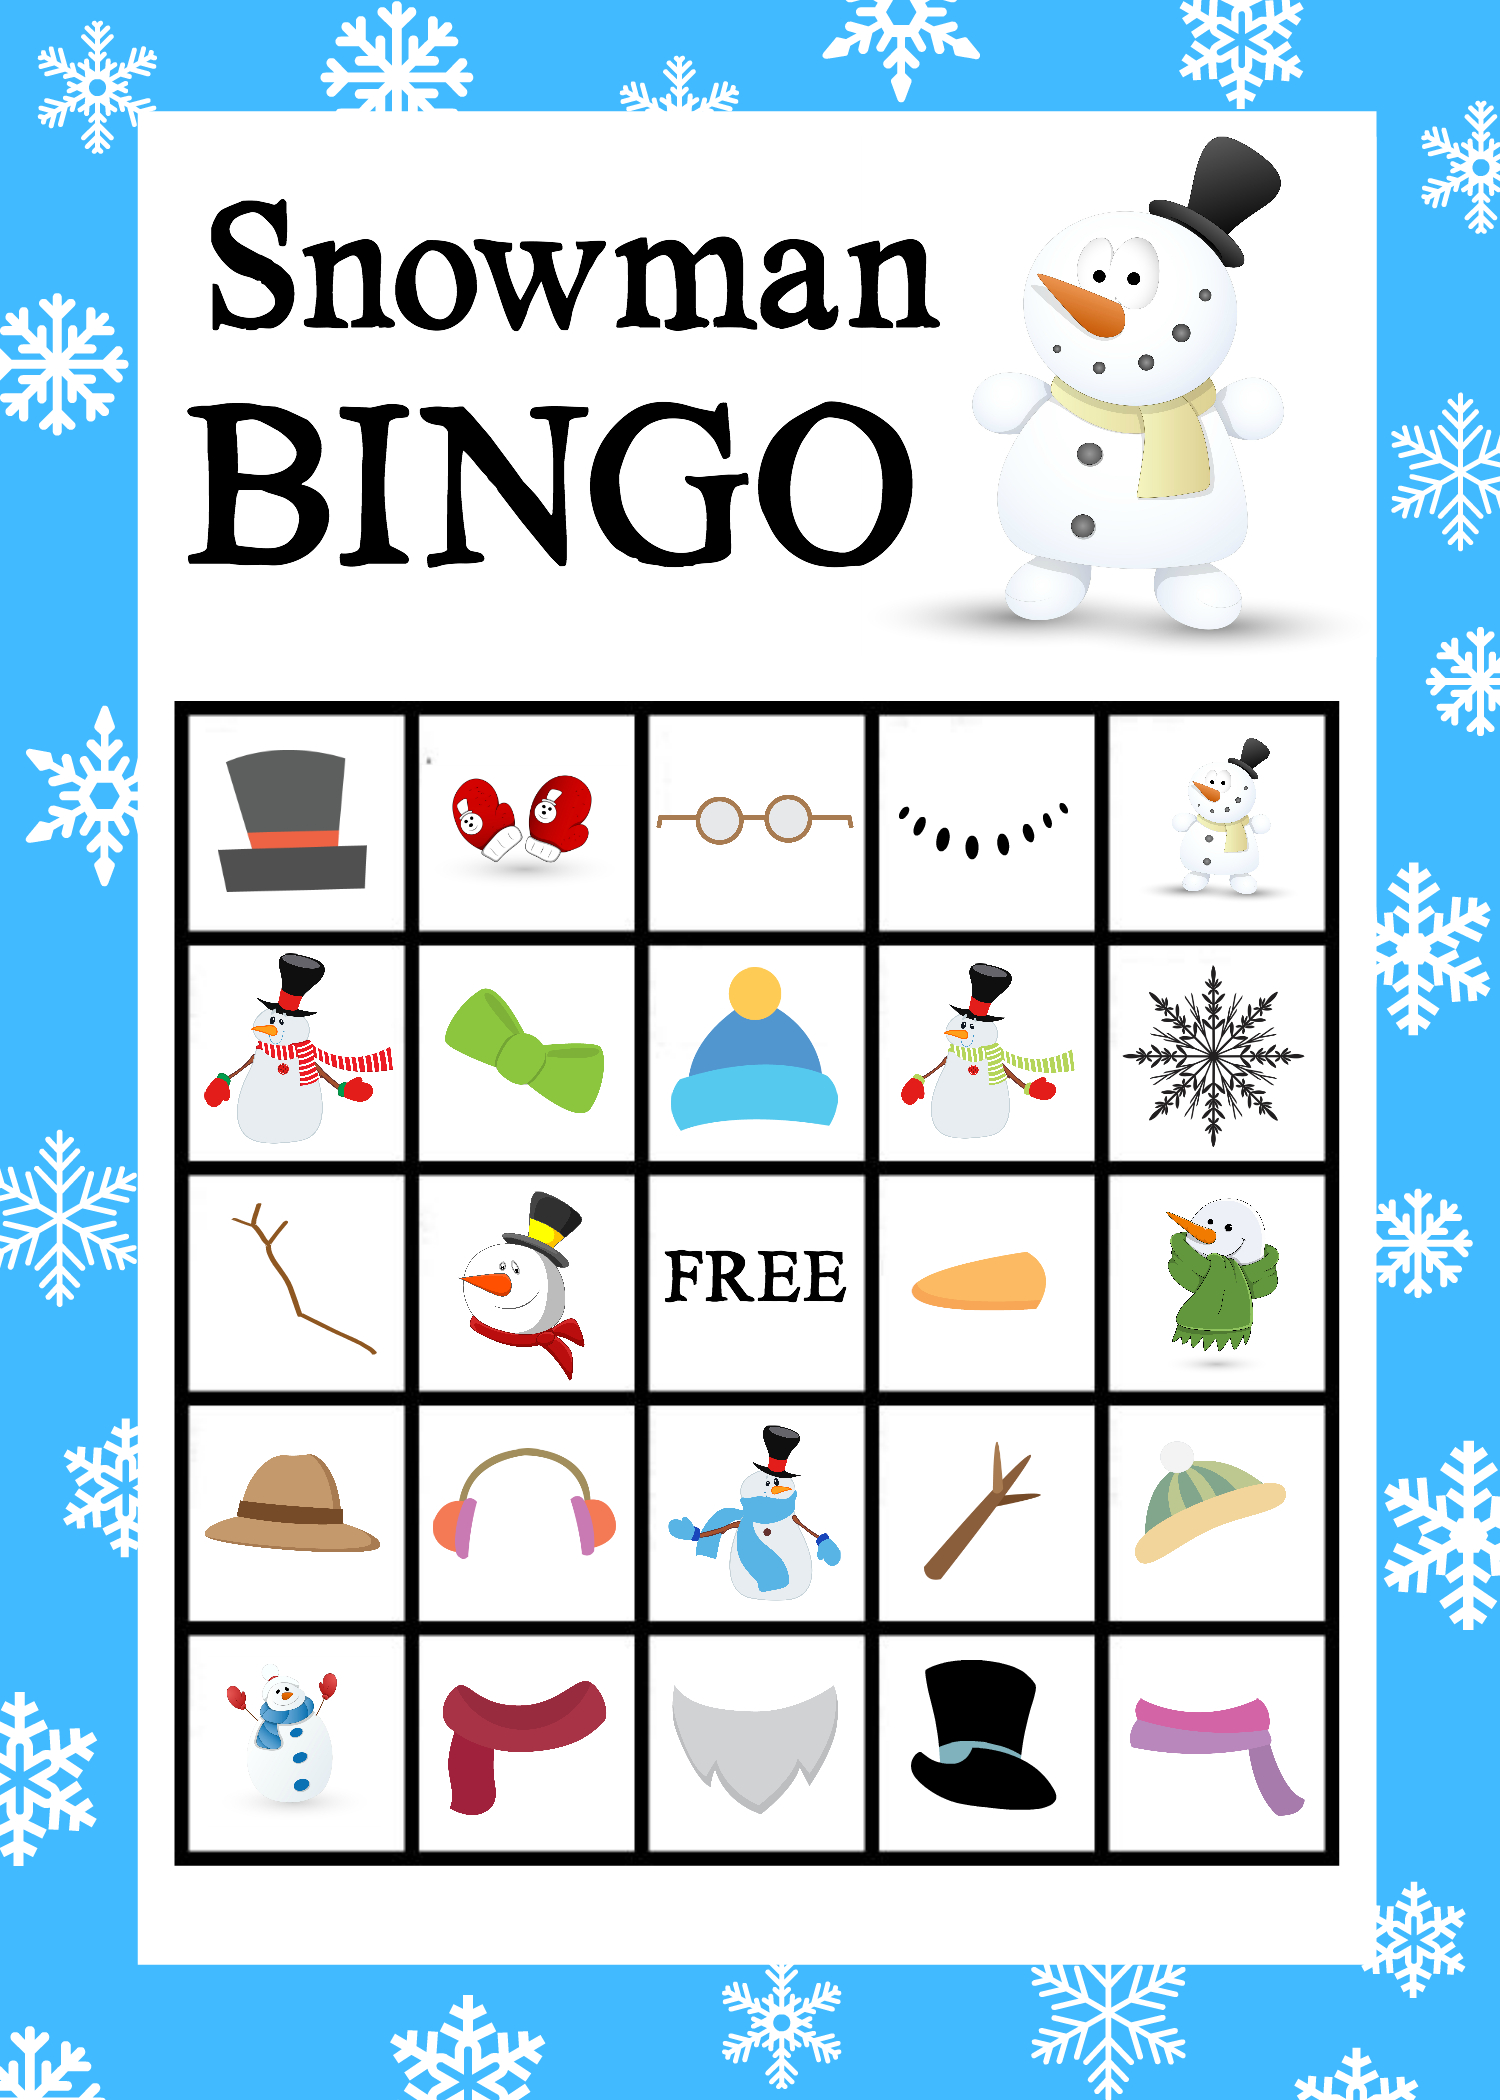 Printable Snowman Bingo Game - Crazy Little Projects - Free Bingo Patterns Printable